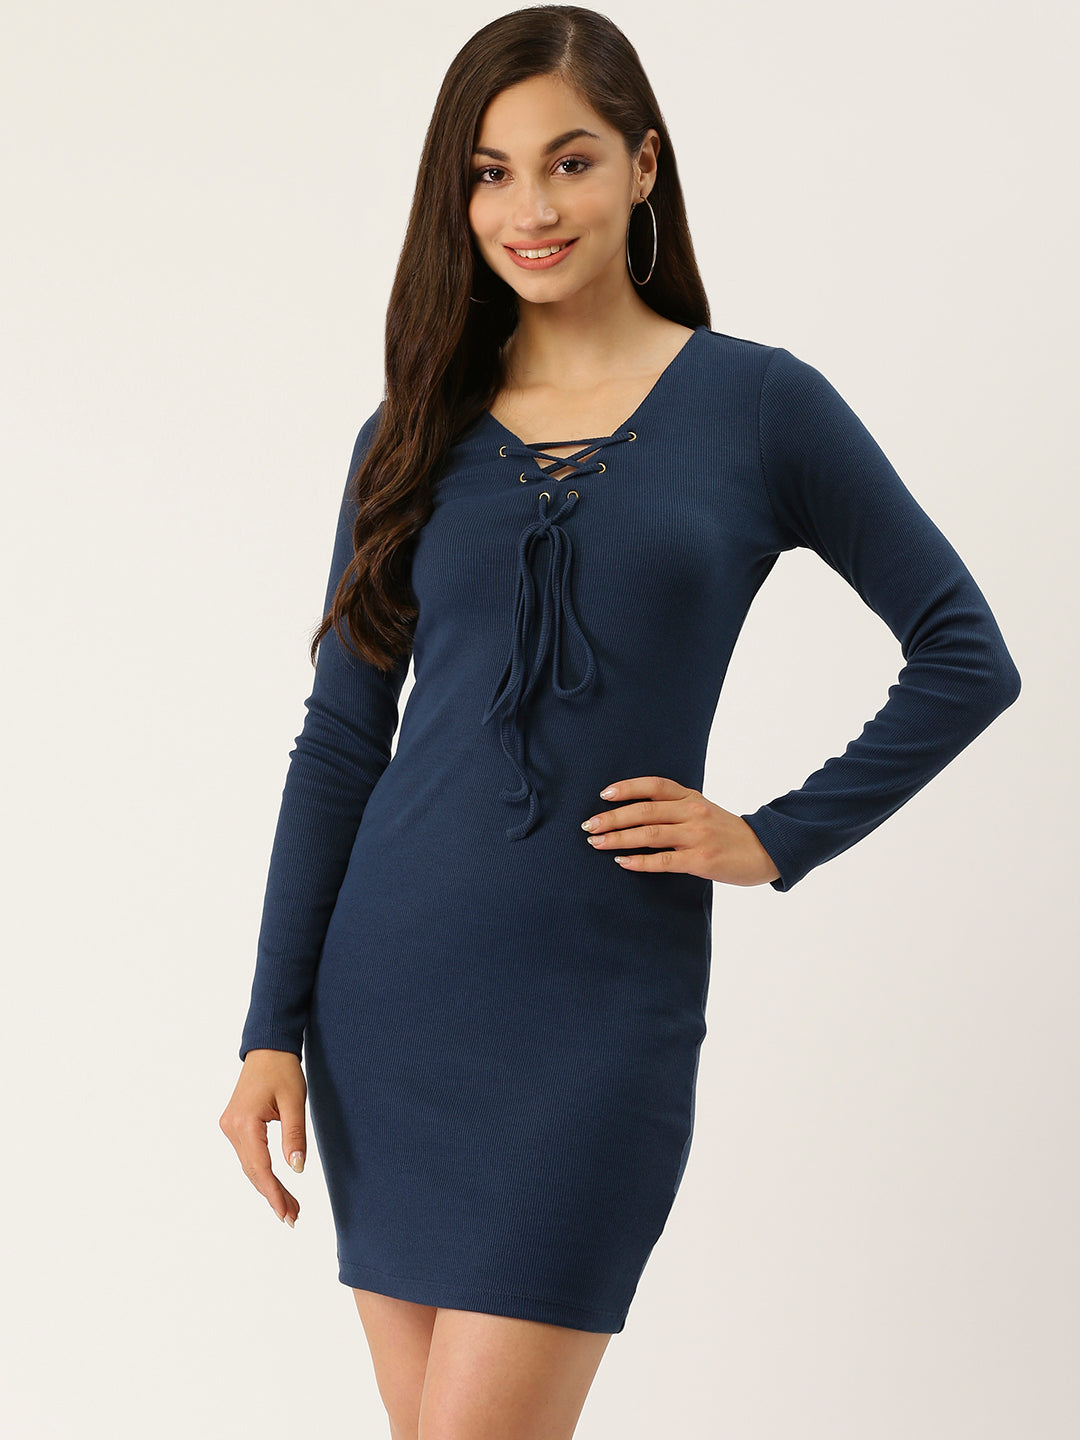 Lace Up Knit Bodycon Blue Dress